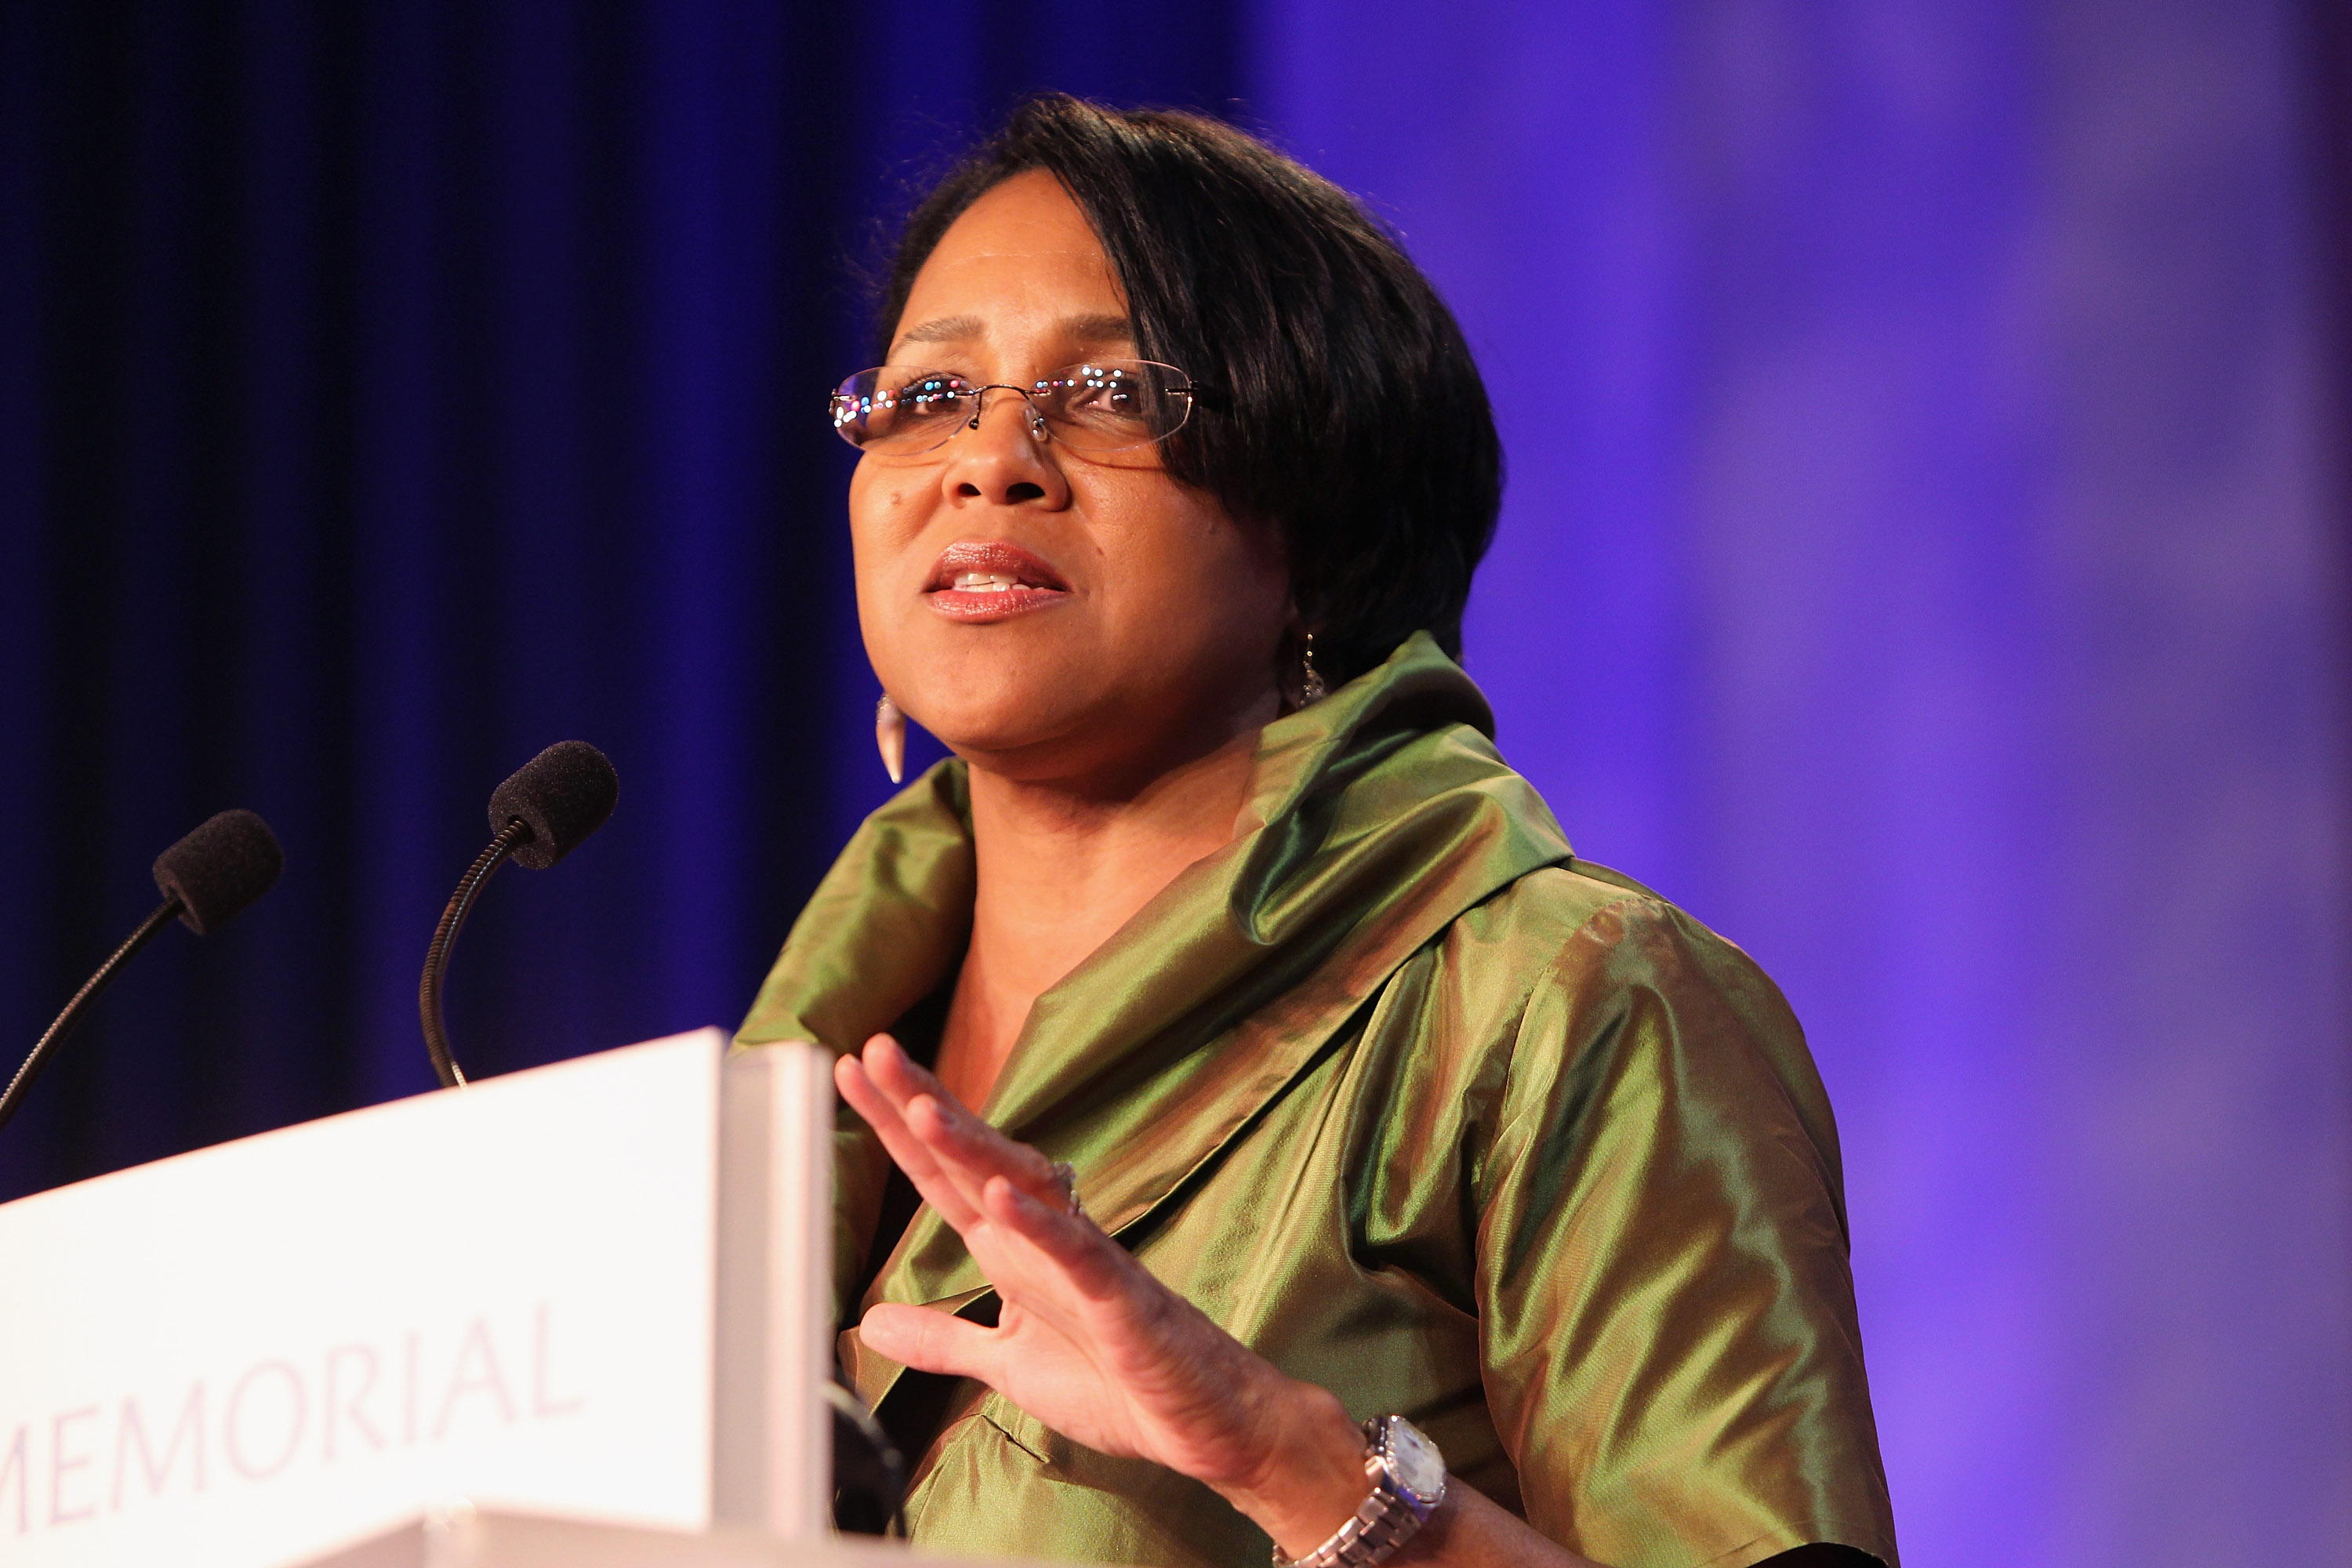 Rosalind Brewer at the Martin Luther King, Jr. Memorial Dream Gala in Washington on Oct. 15, 2011.